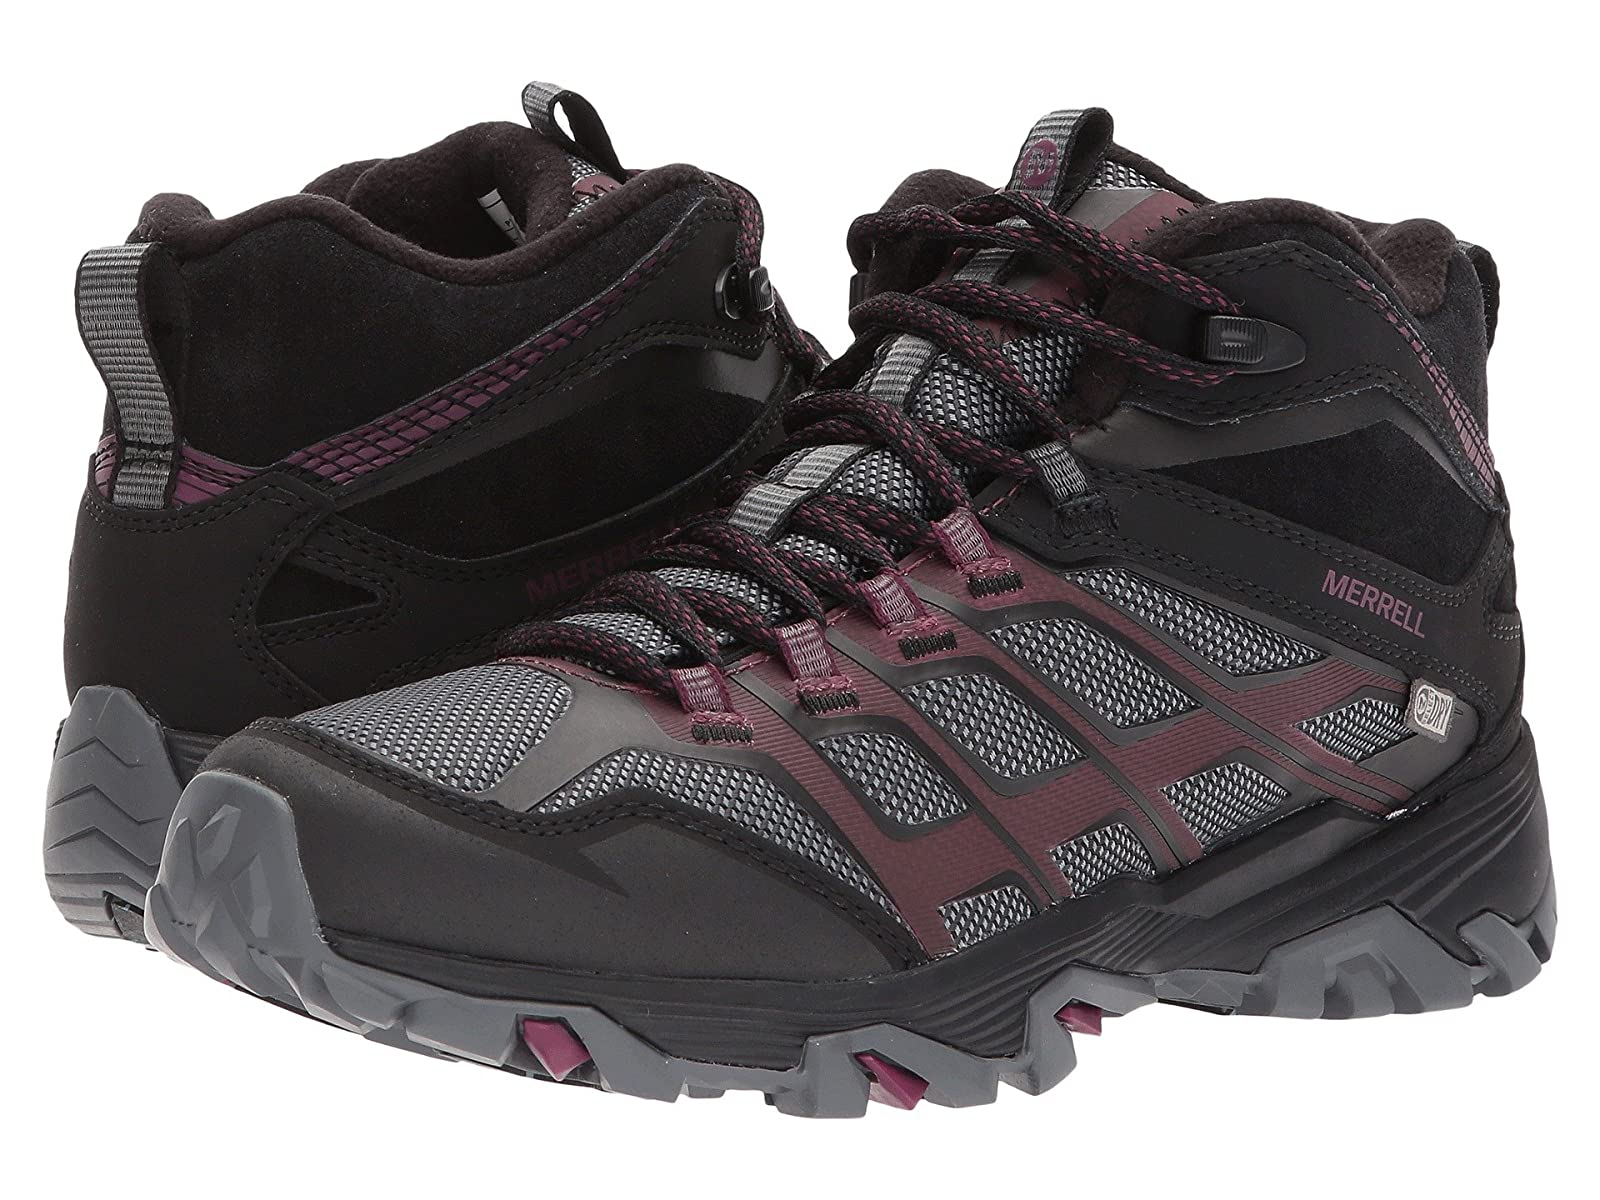 Merrell Moab FST Ice+ ThermoCheap and distinctive eye-catching shoes